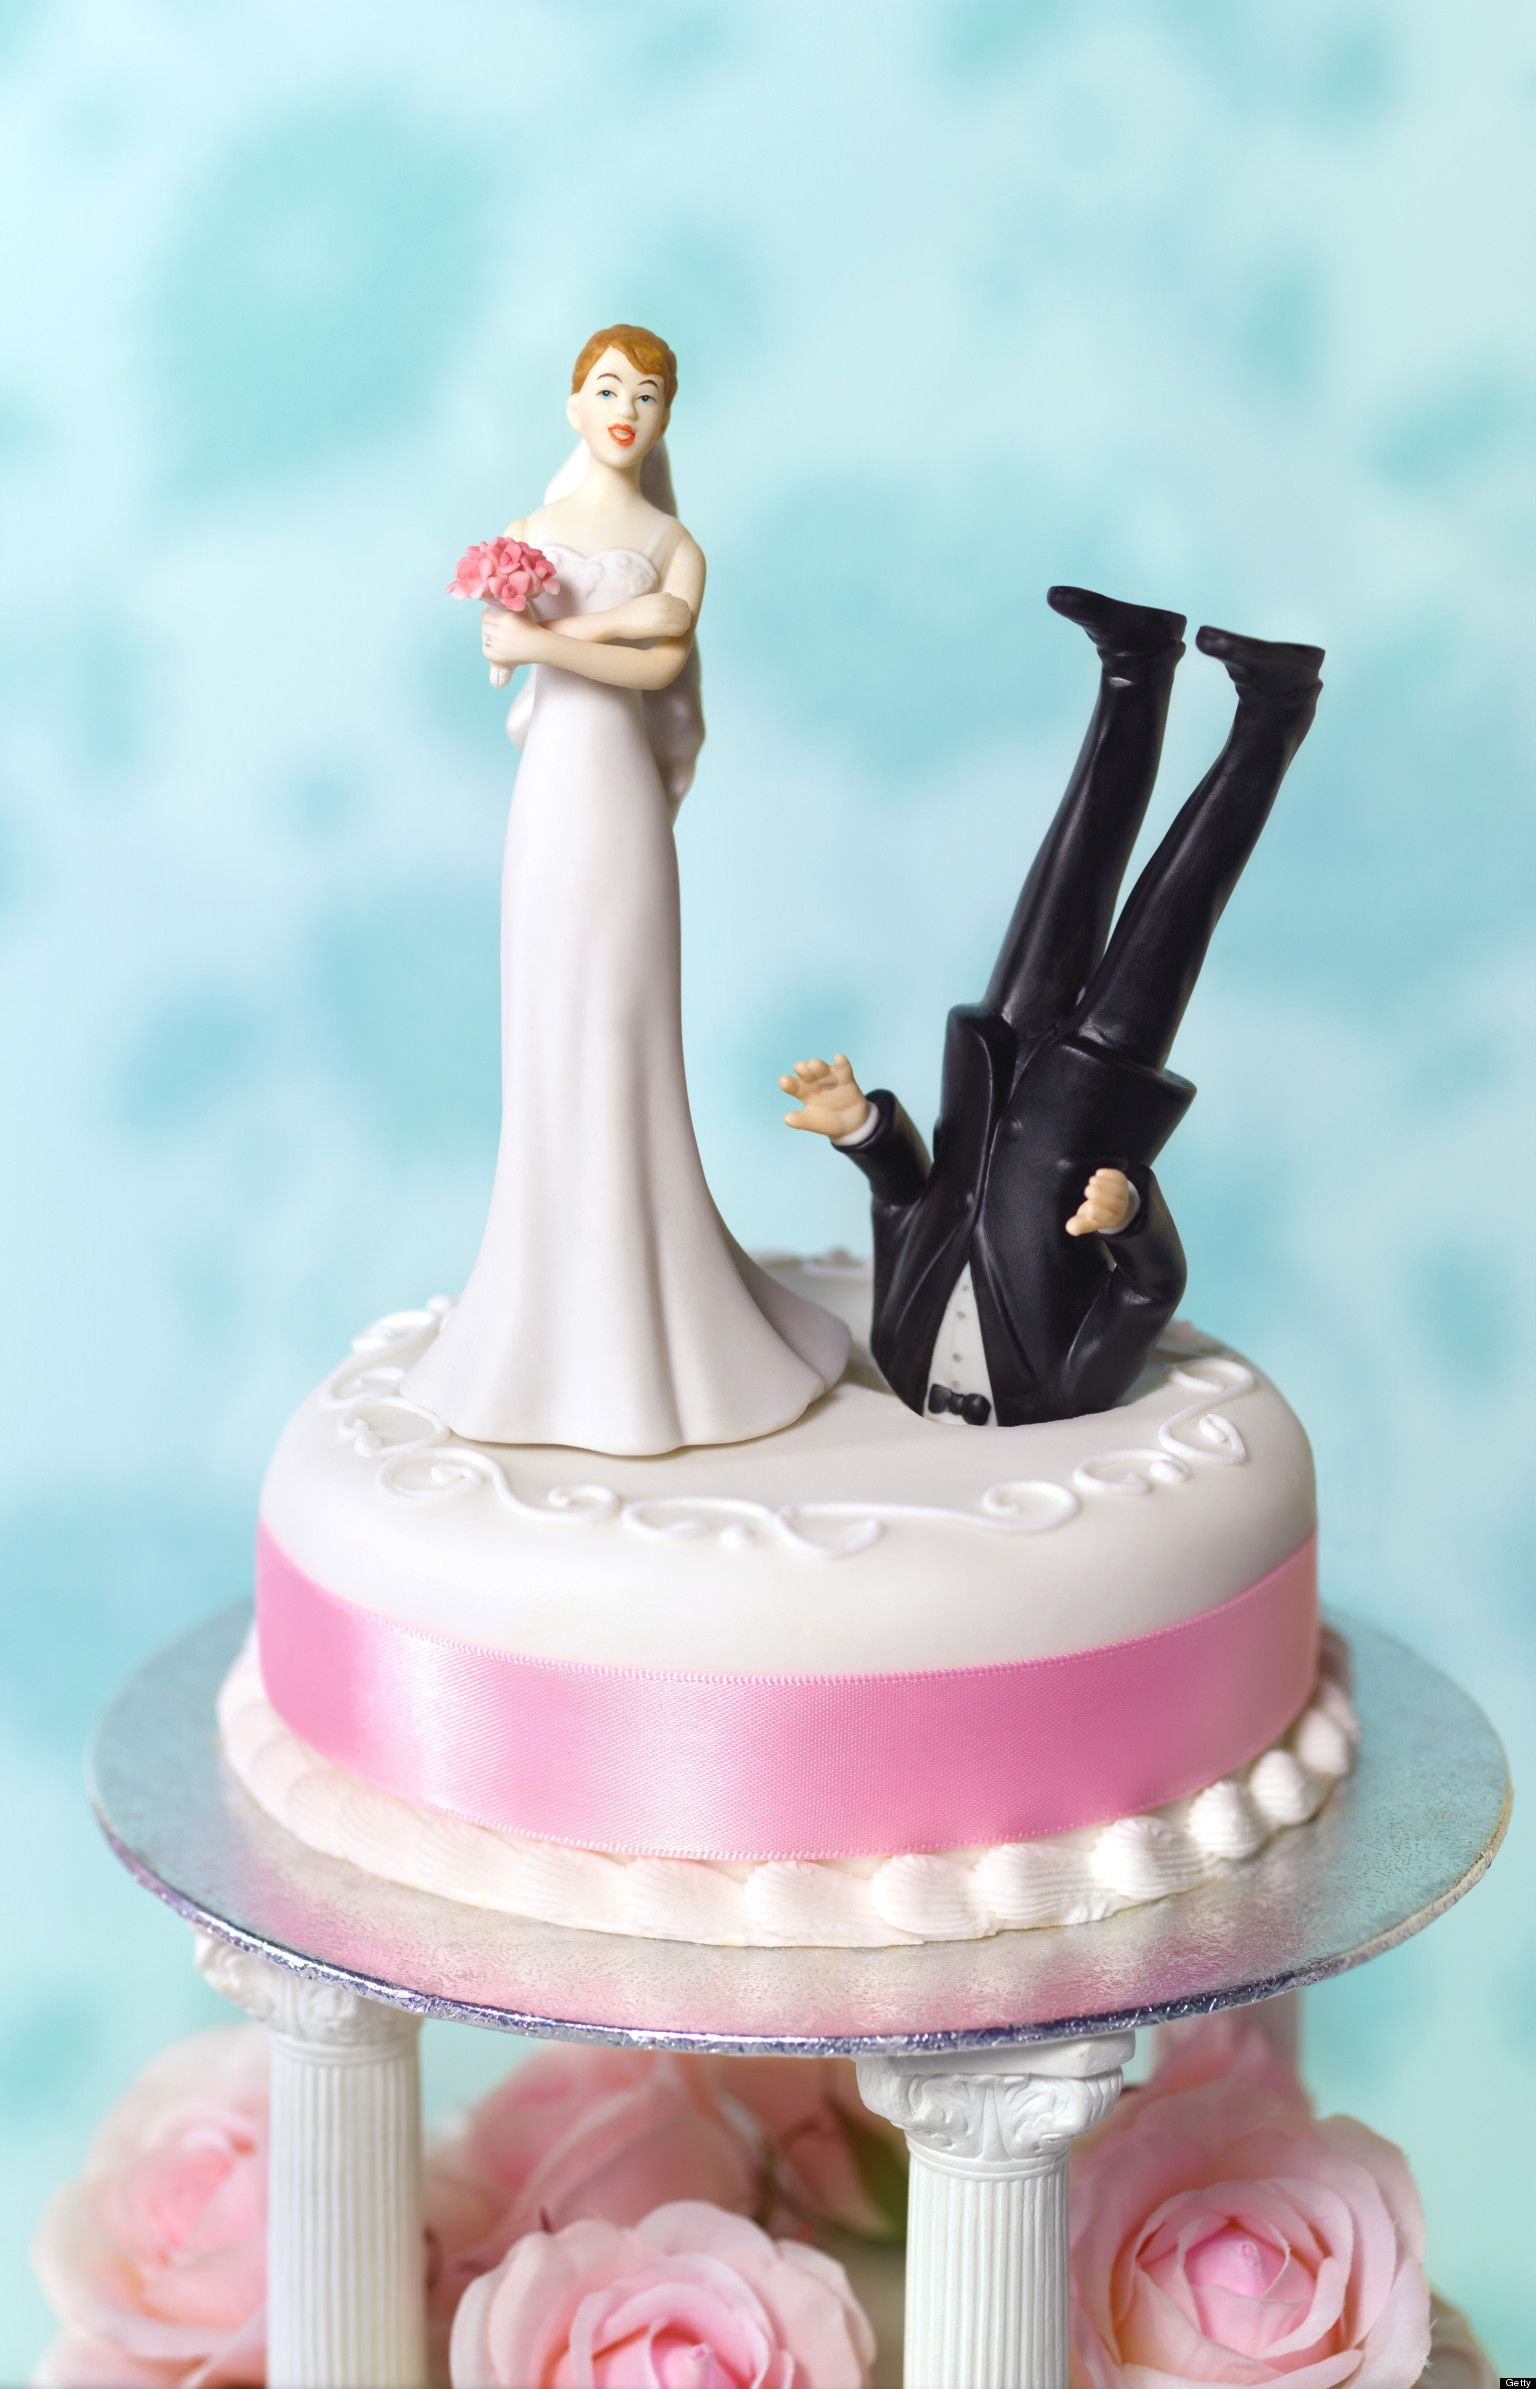 wedding cake topper Funny Divorce What Huffpost Divorce Readers Wedding Cake Toppers Should Have Depicted